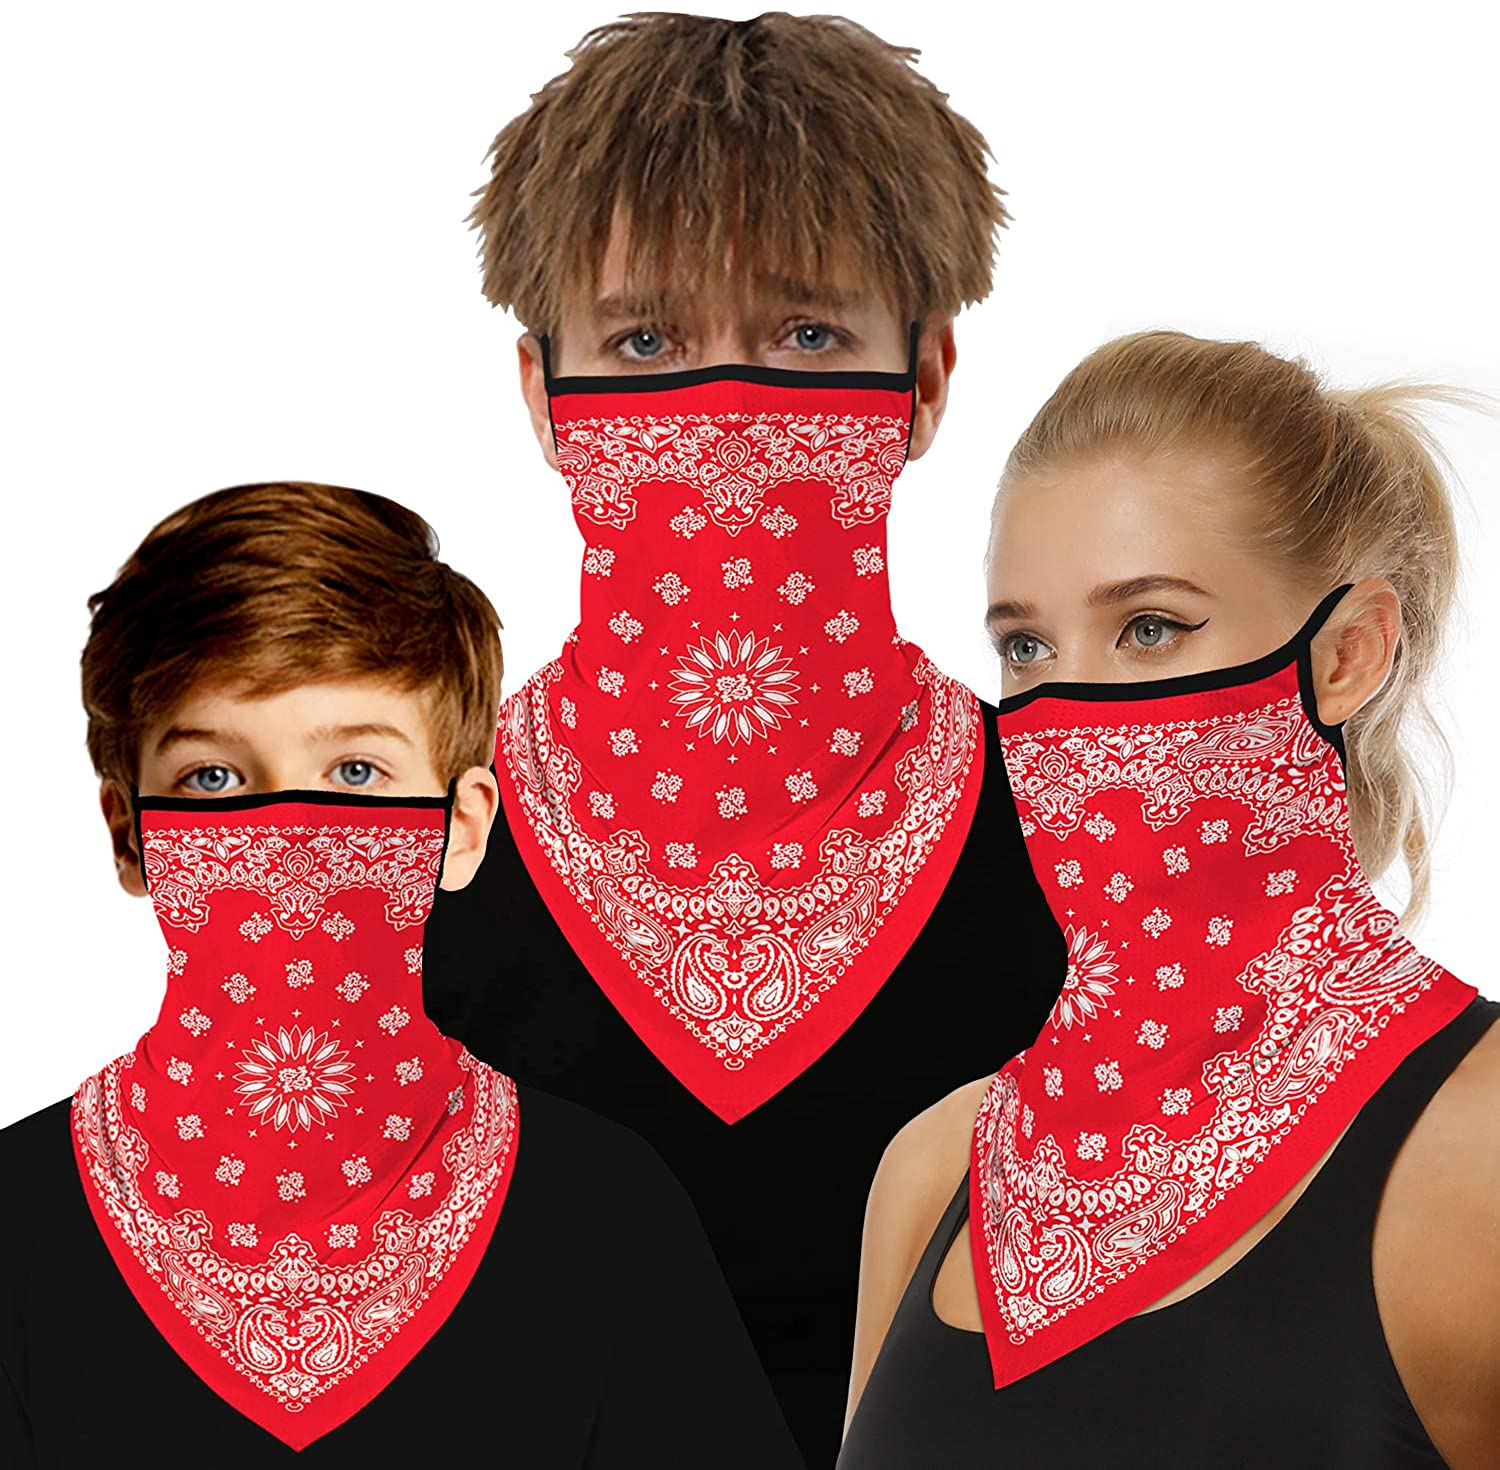 luyusbaby Girls Boys Seamless Bandana Triangle Face Scarf Ear Loops Neck Gaiter Cover, Motorcycle Face Bandana for Kids Teenagers